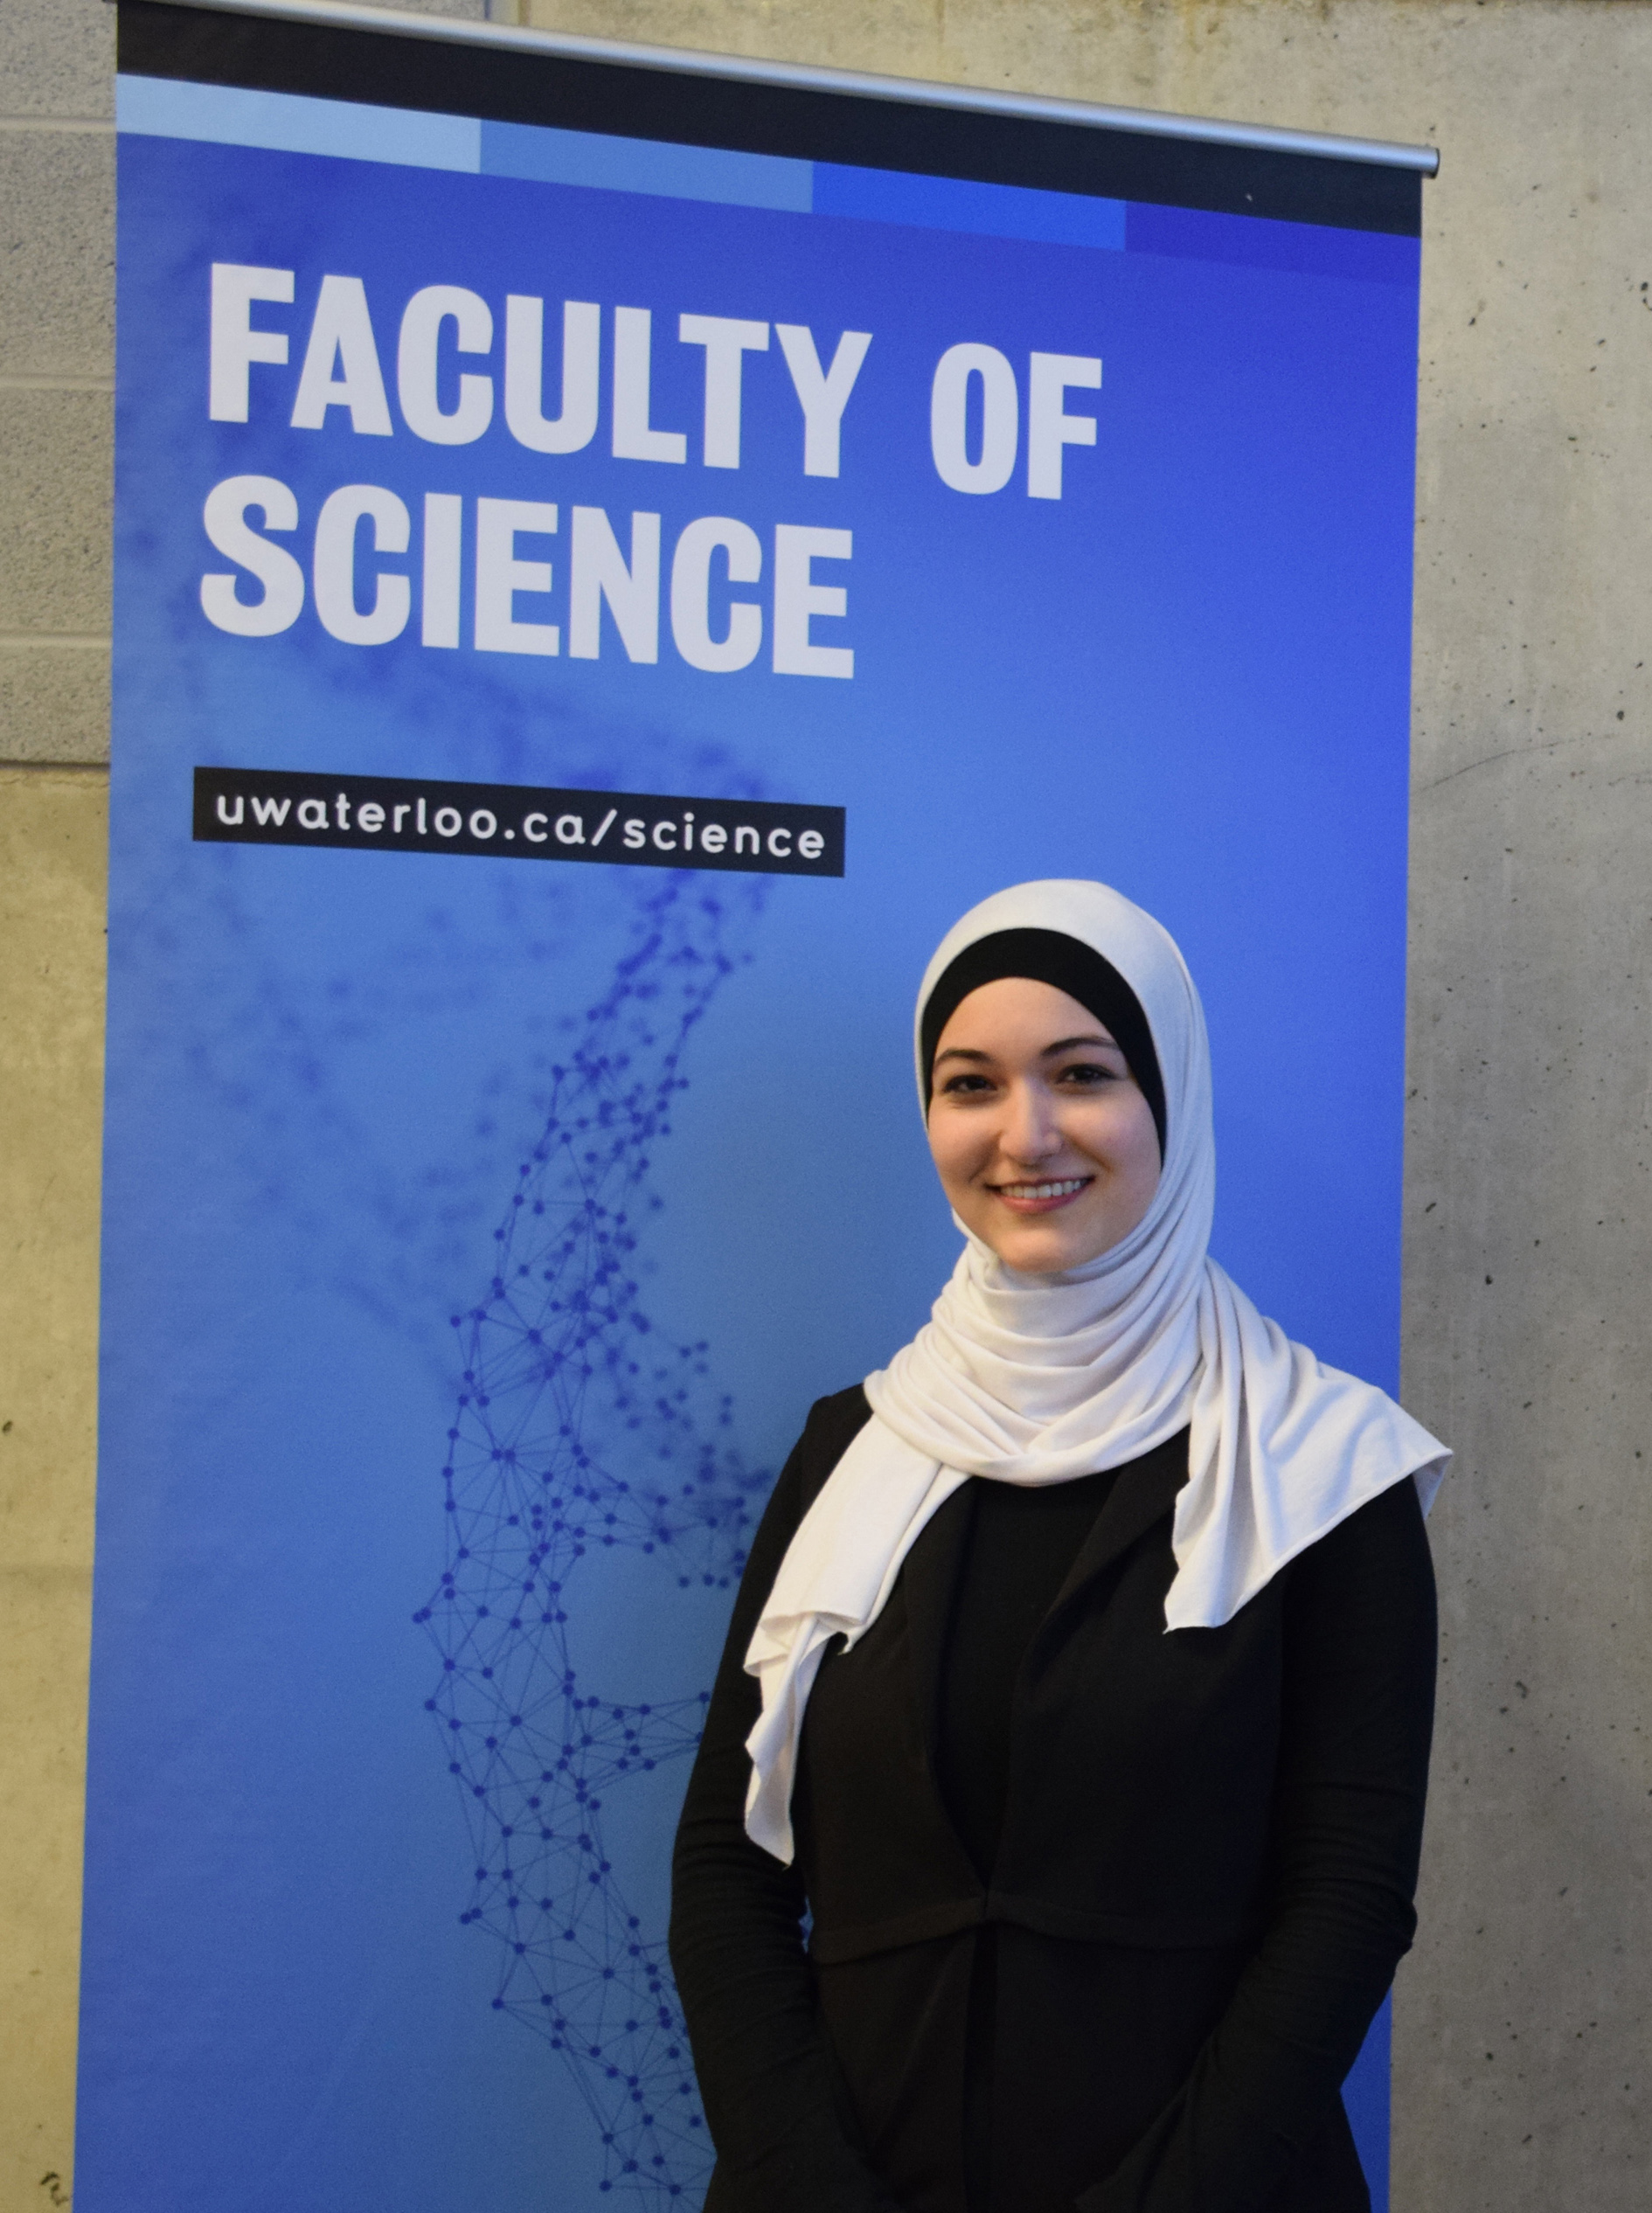 Yara Mohiar who placed first in the Science Faculty Heat of the 3 Minute Thesis (3MT) 2020 competition!